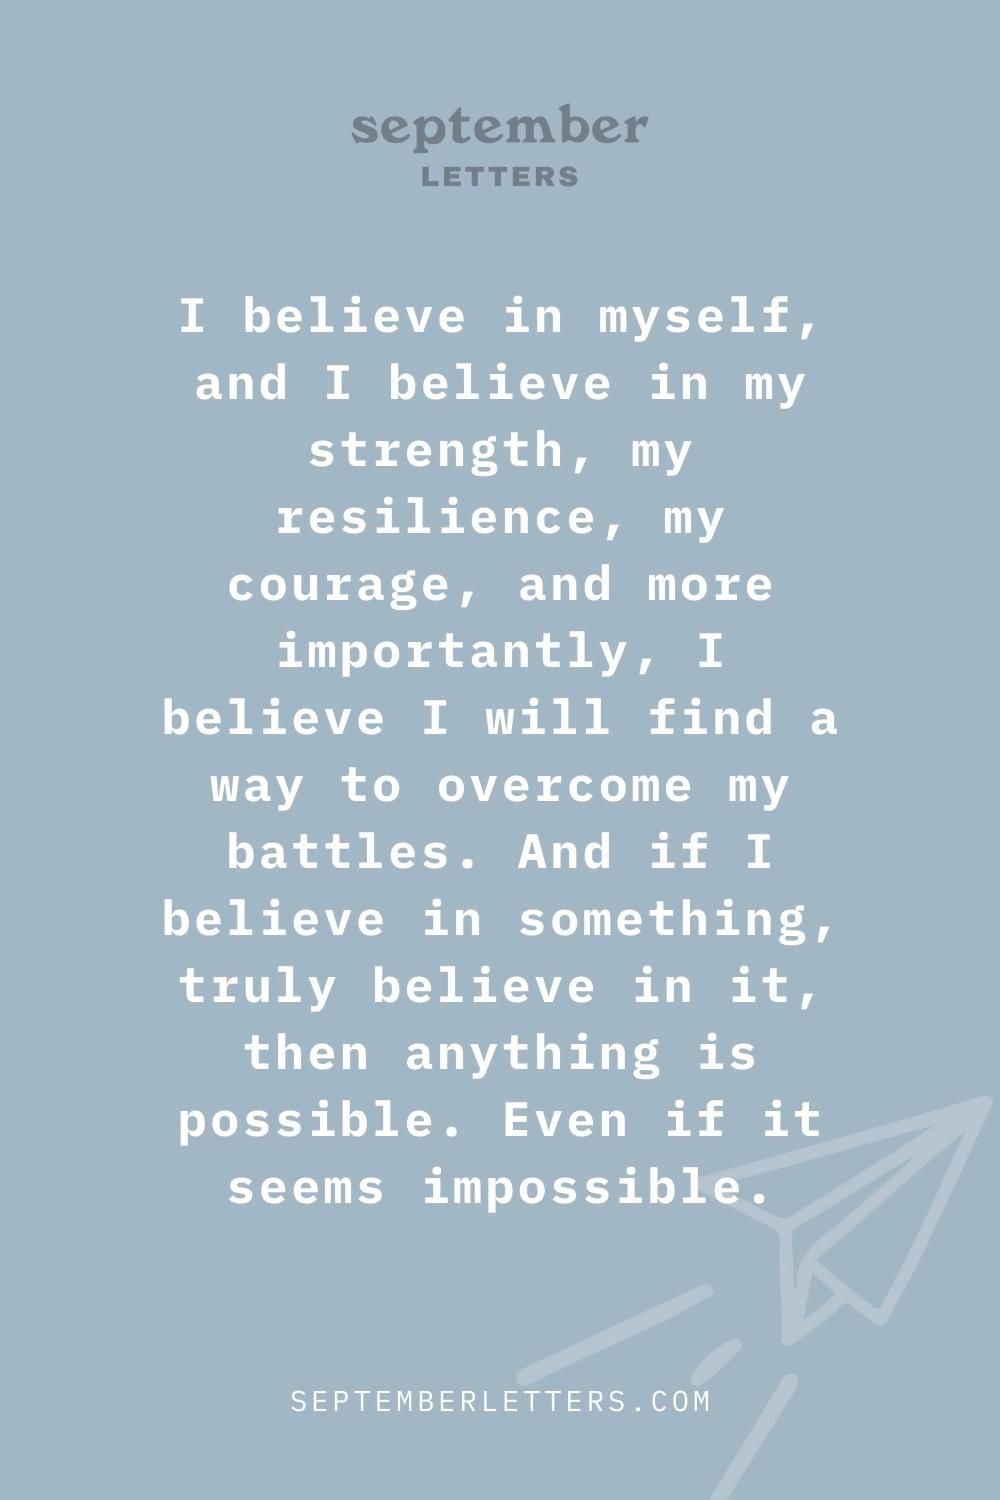 Anything Is Possible - Building Self-Confidence through Anxiety